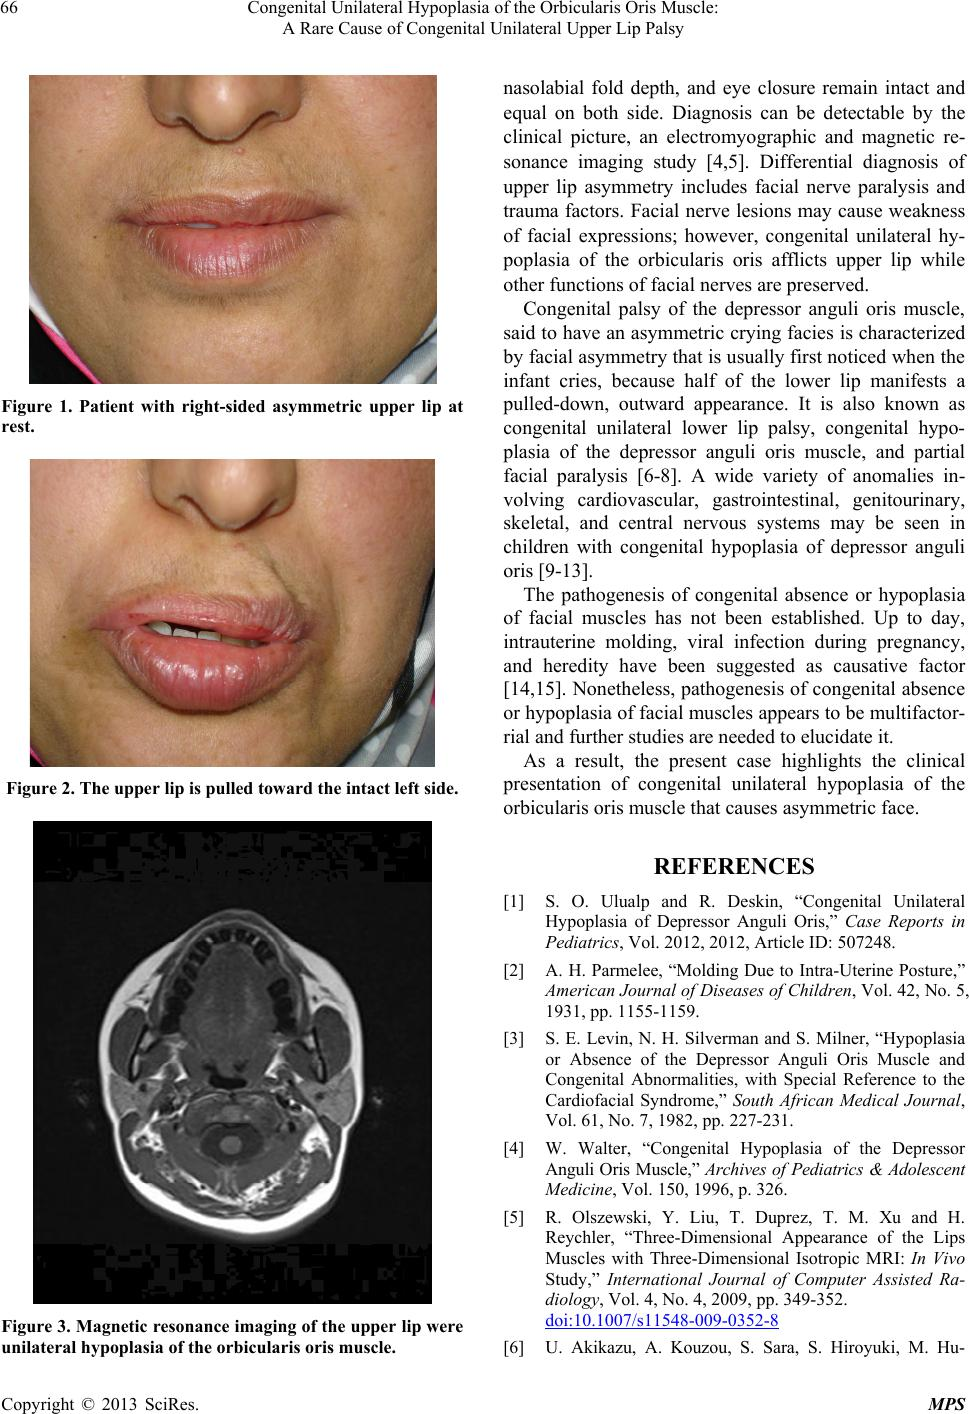 Congenital Unilateral Hypoplasia Of The Orbicularis Oris Muscle A